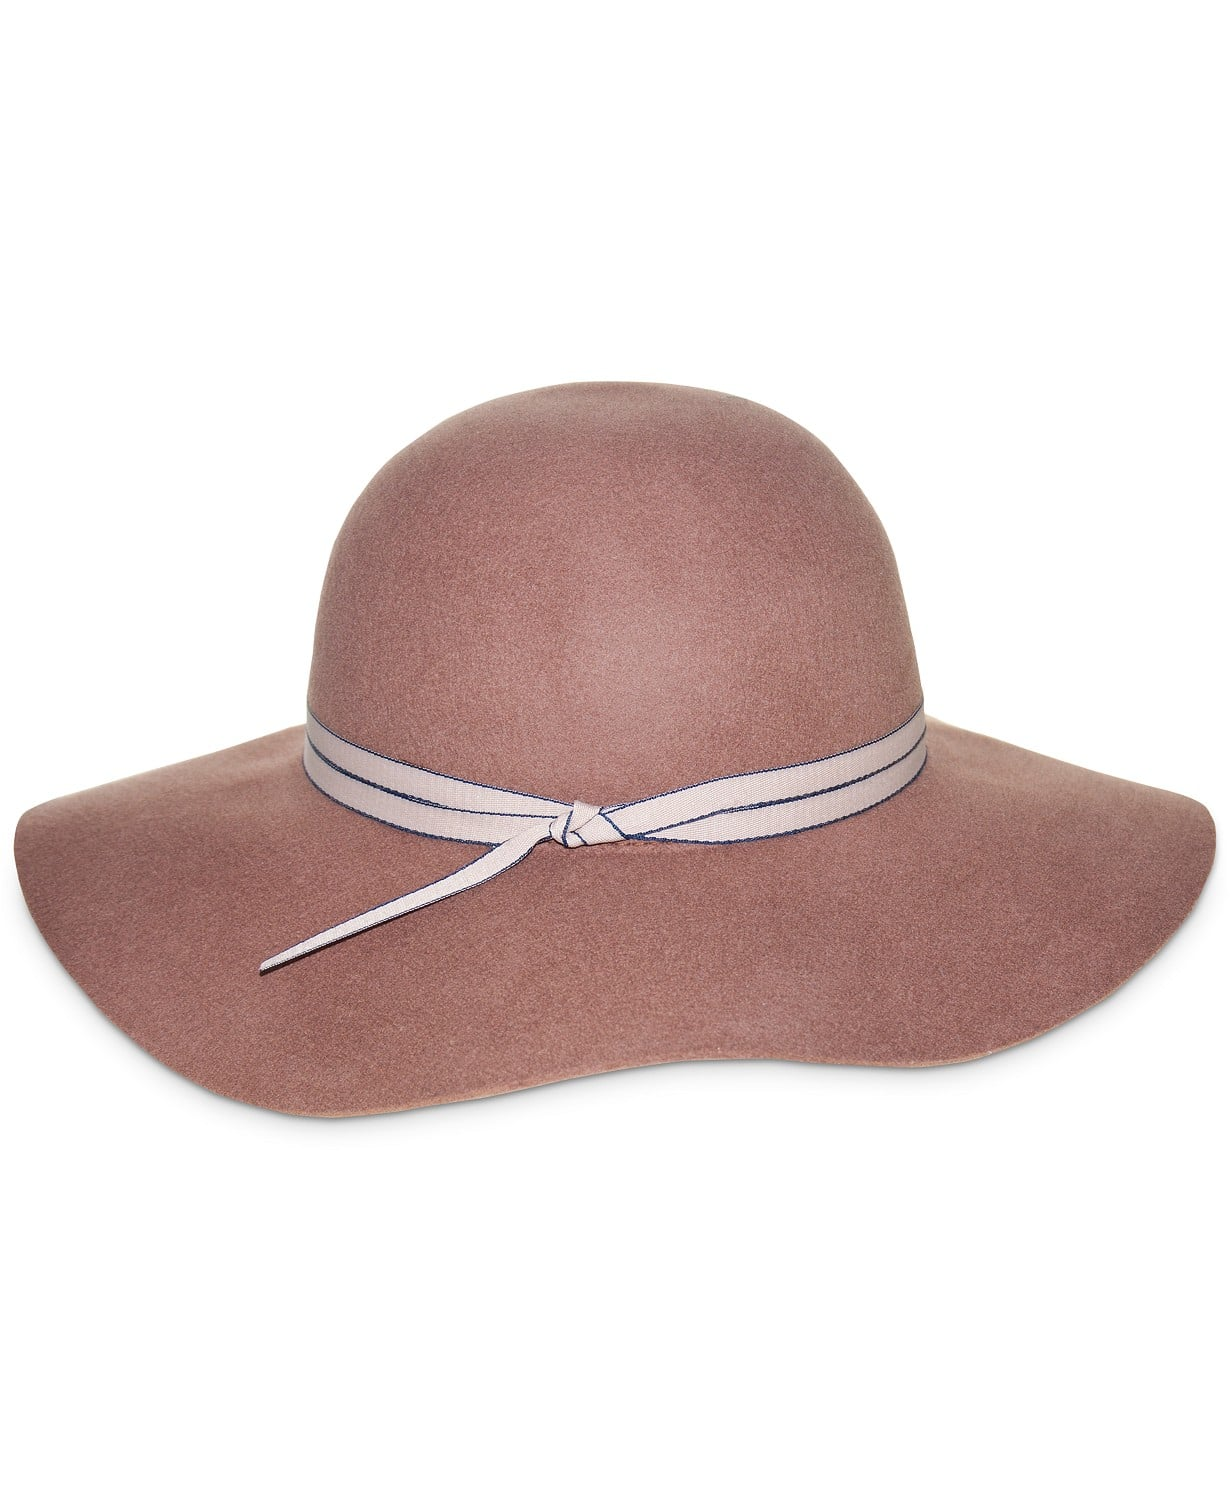 Complete your chic look with this sophisticated vibes of this felt floppy hat from Nine West.